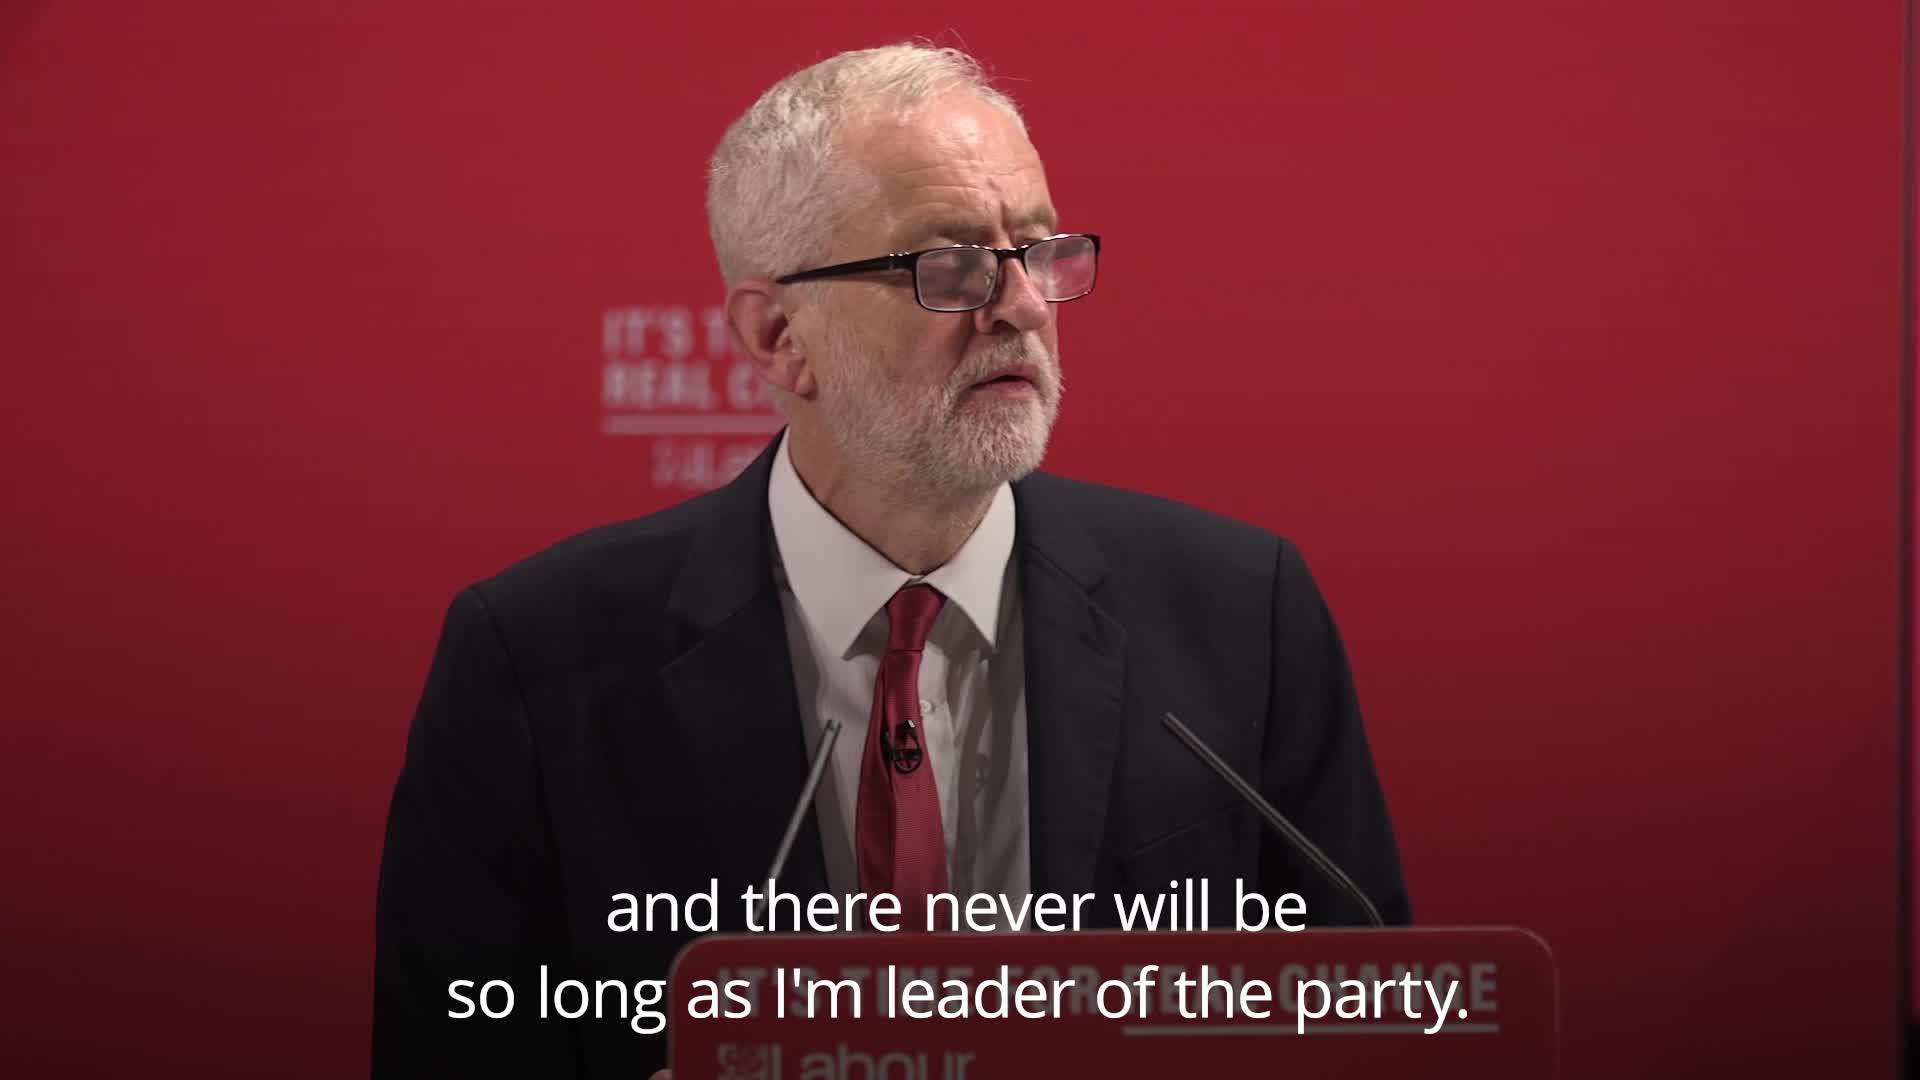 Jeremy Corbyn: No place whatsoever for anti-Semitism in my party